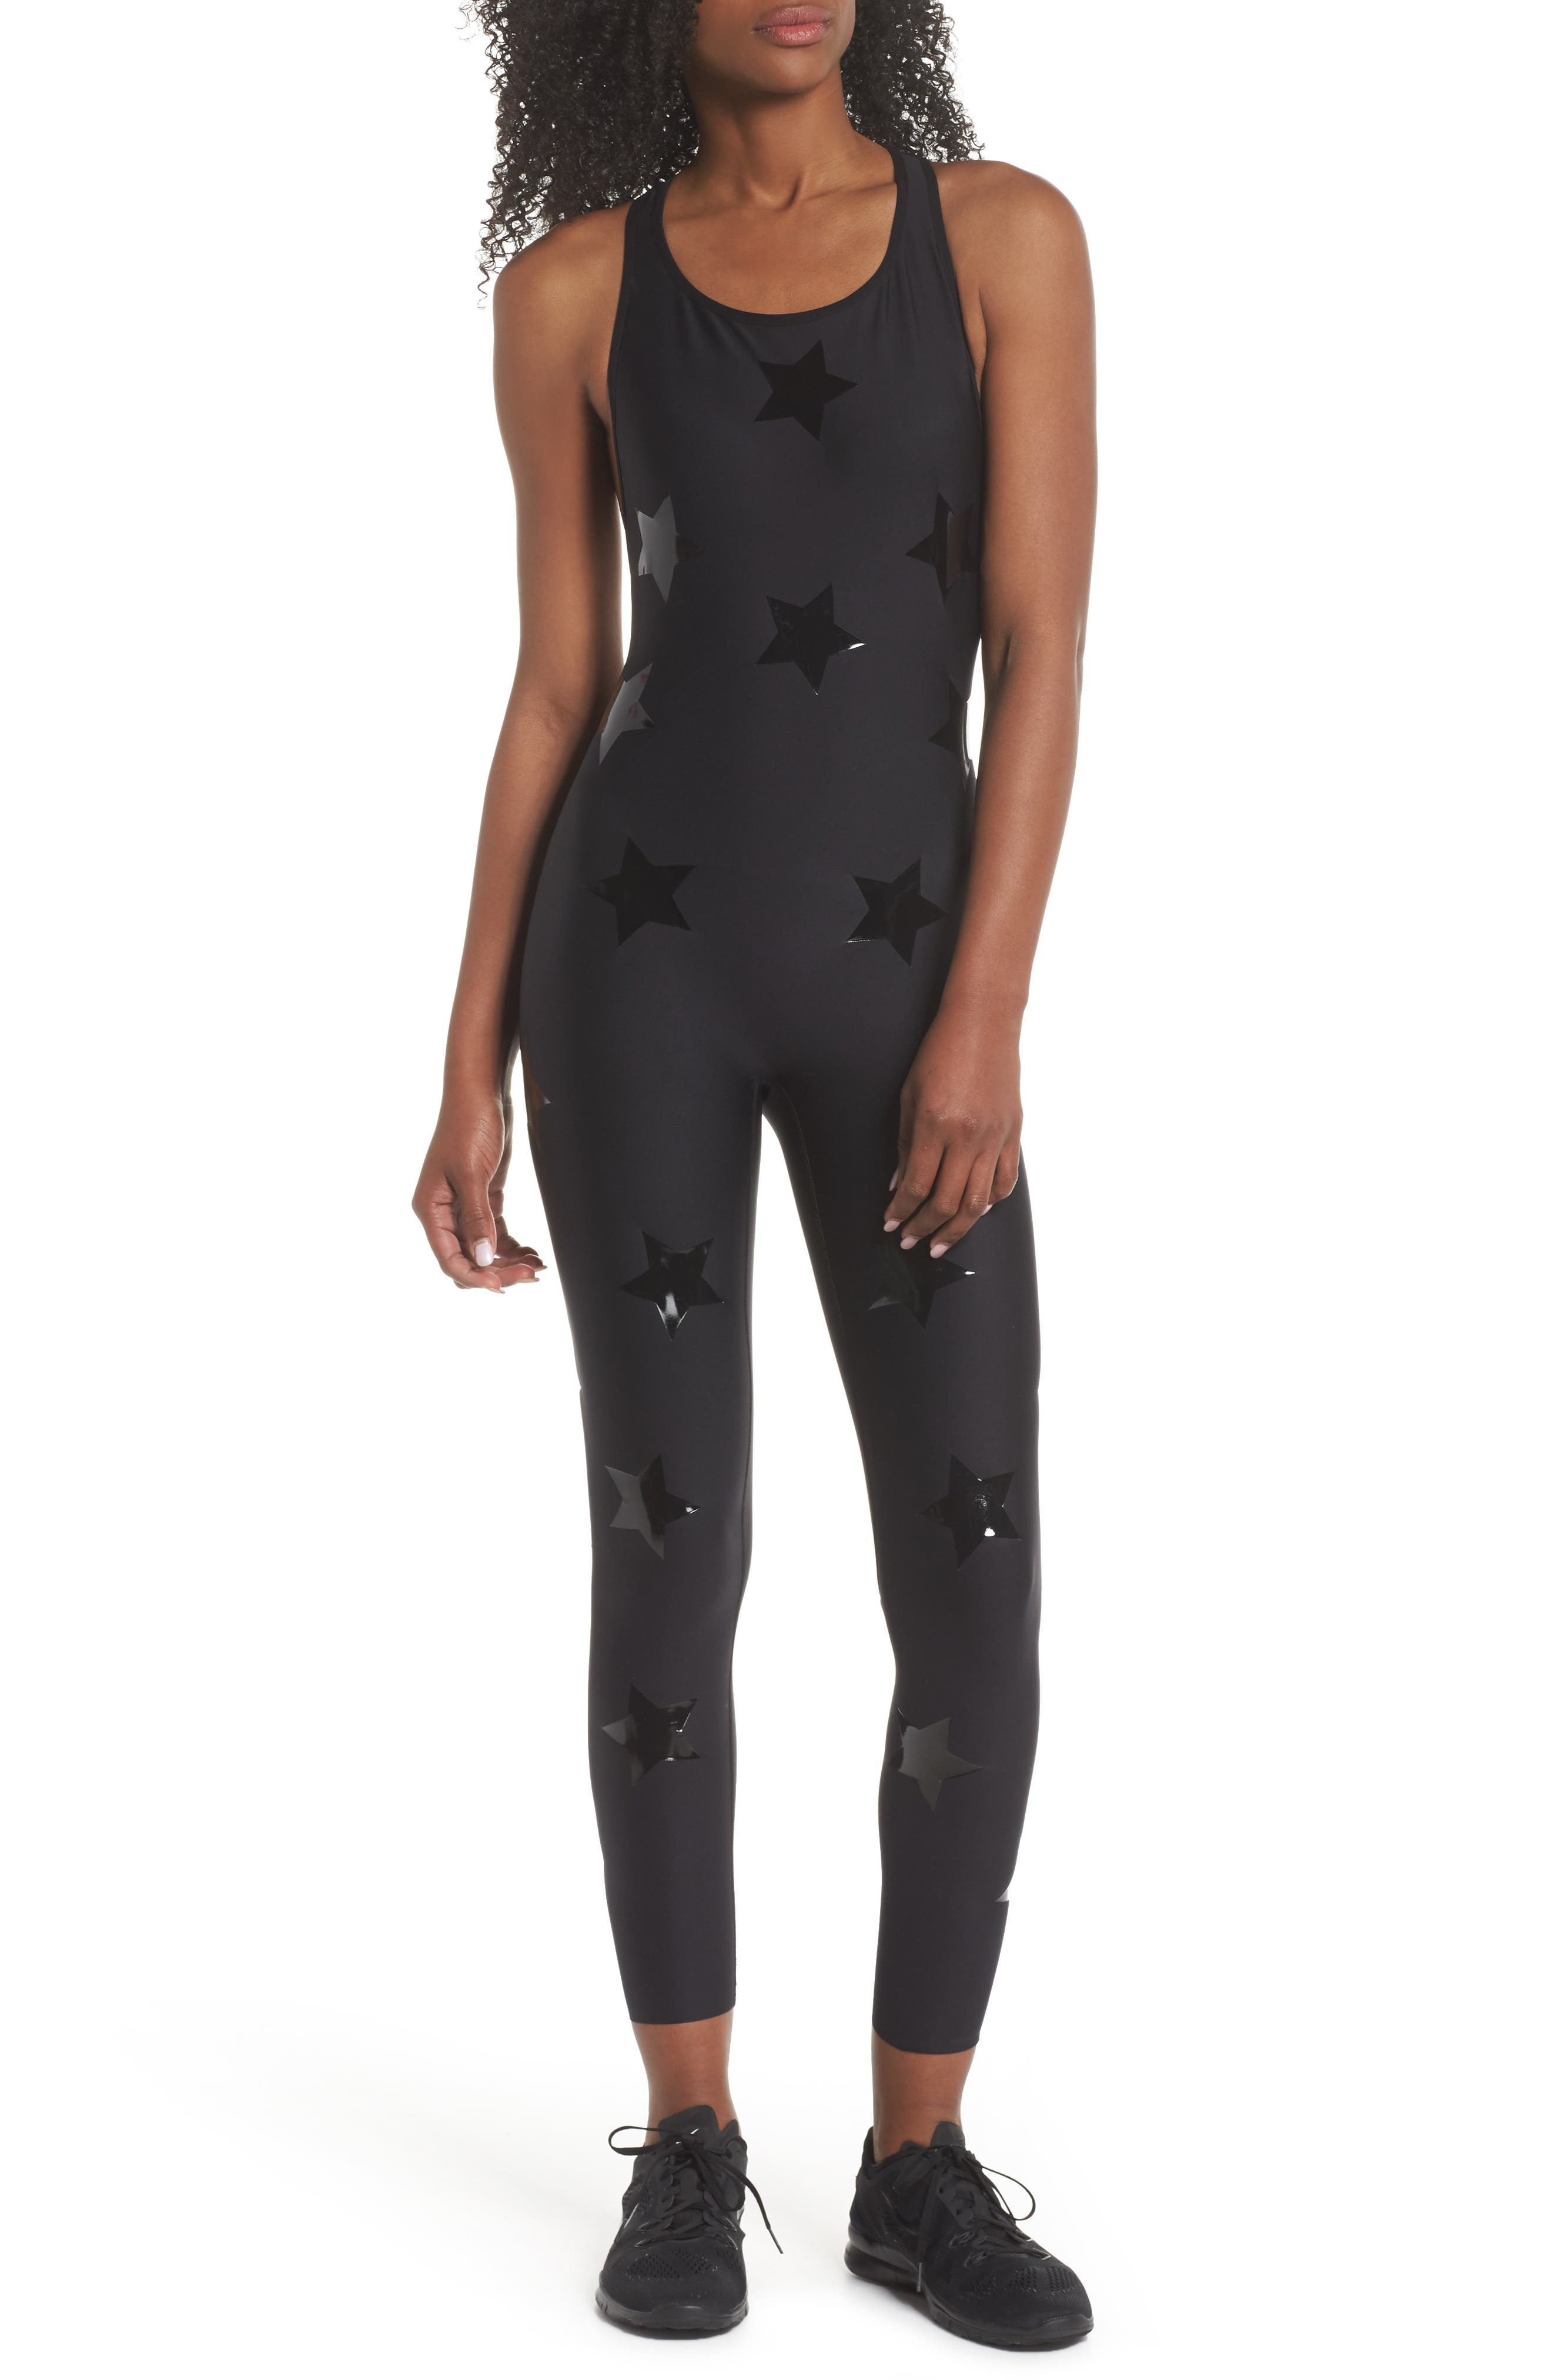 Ultracor Motion Lux Knockout Unitard